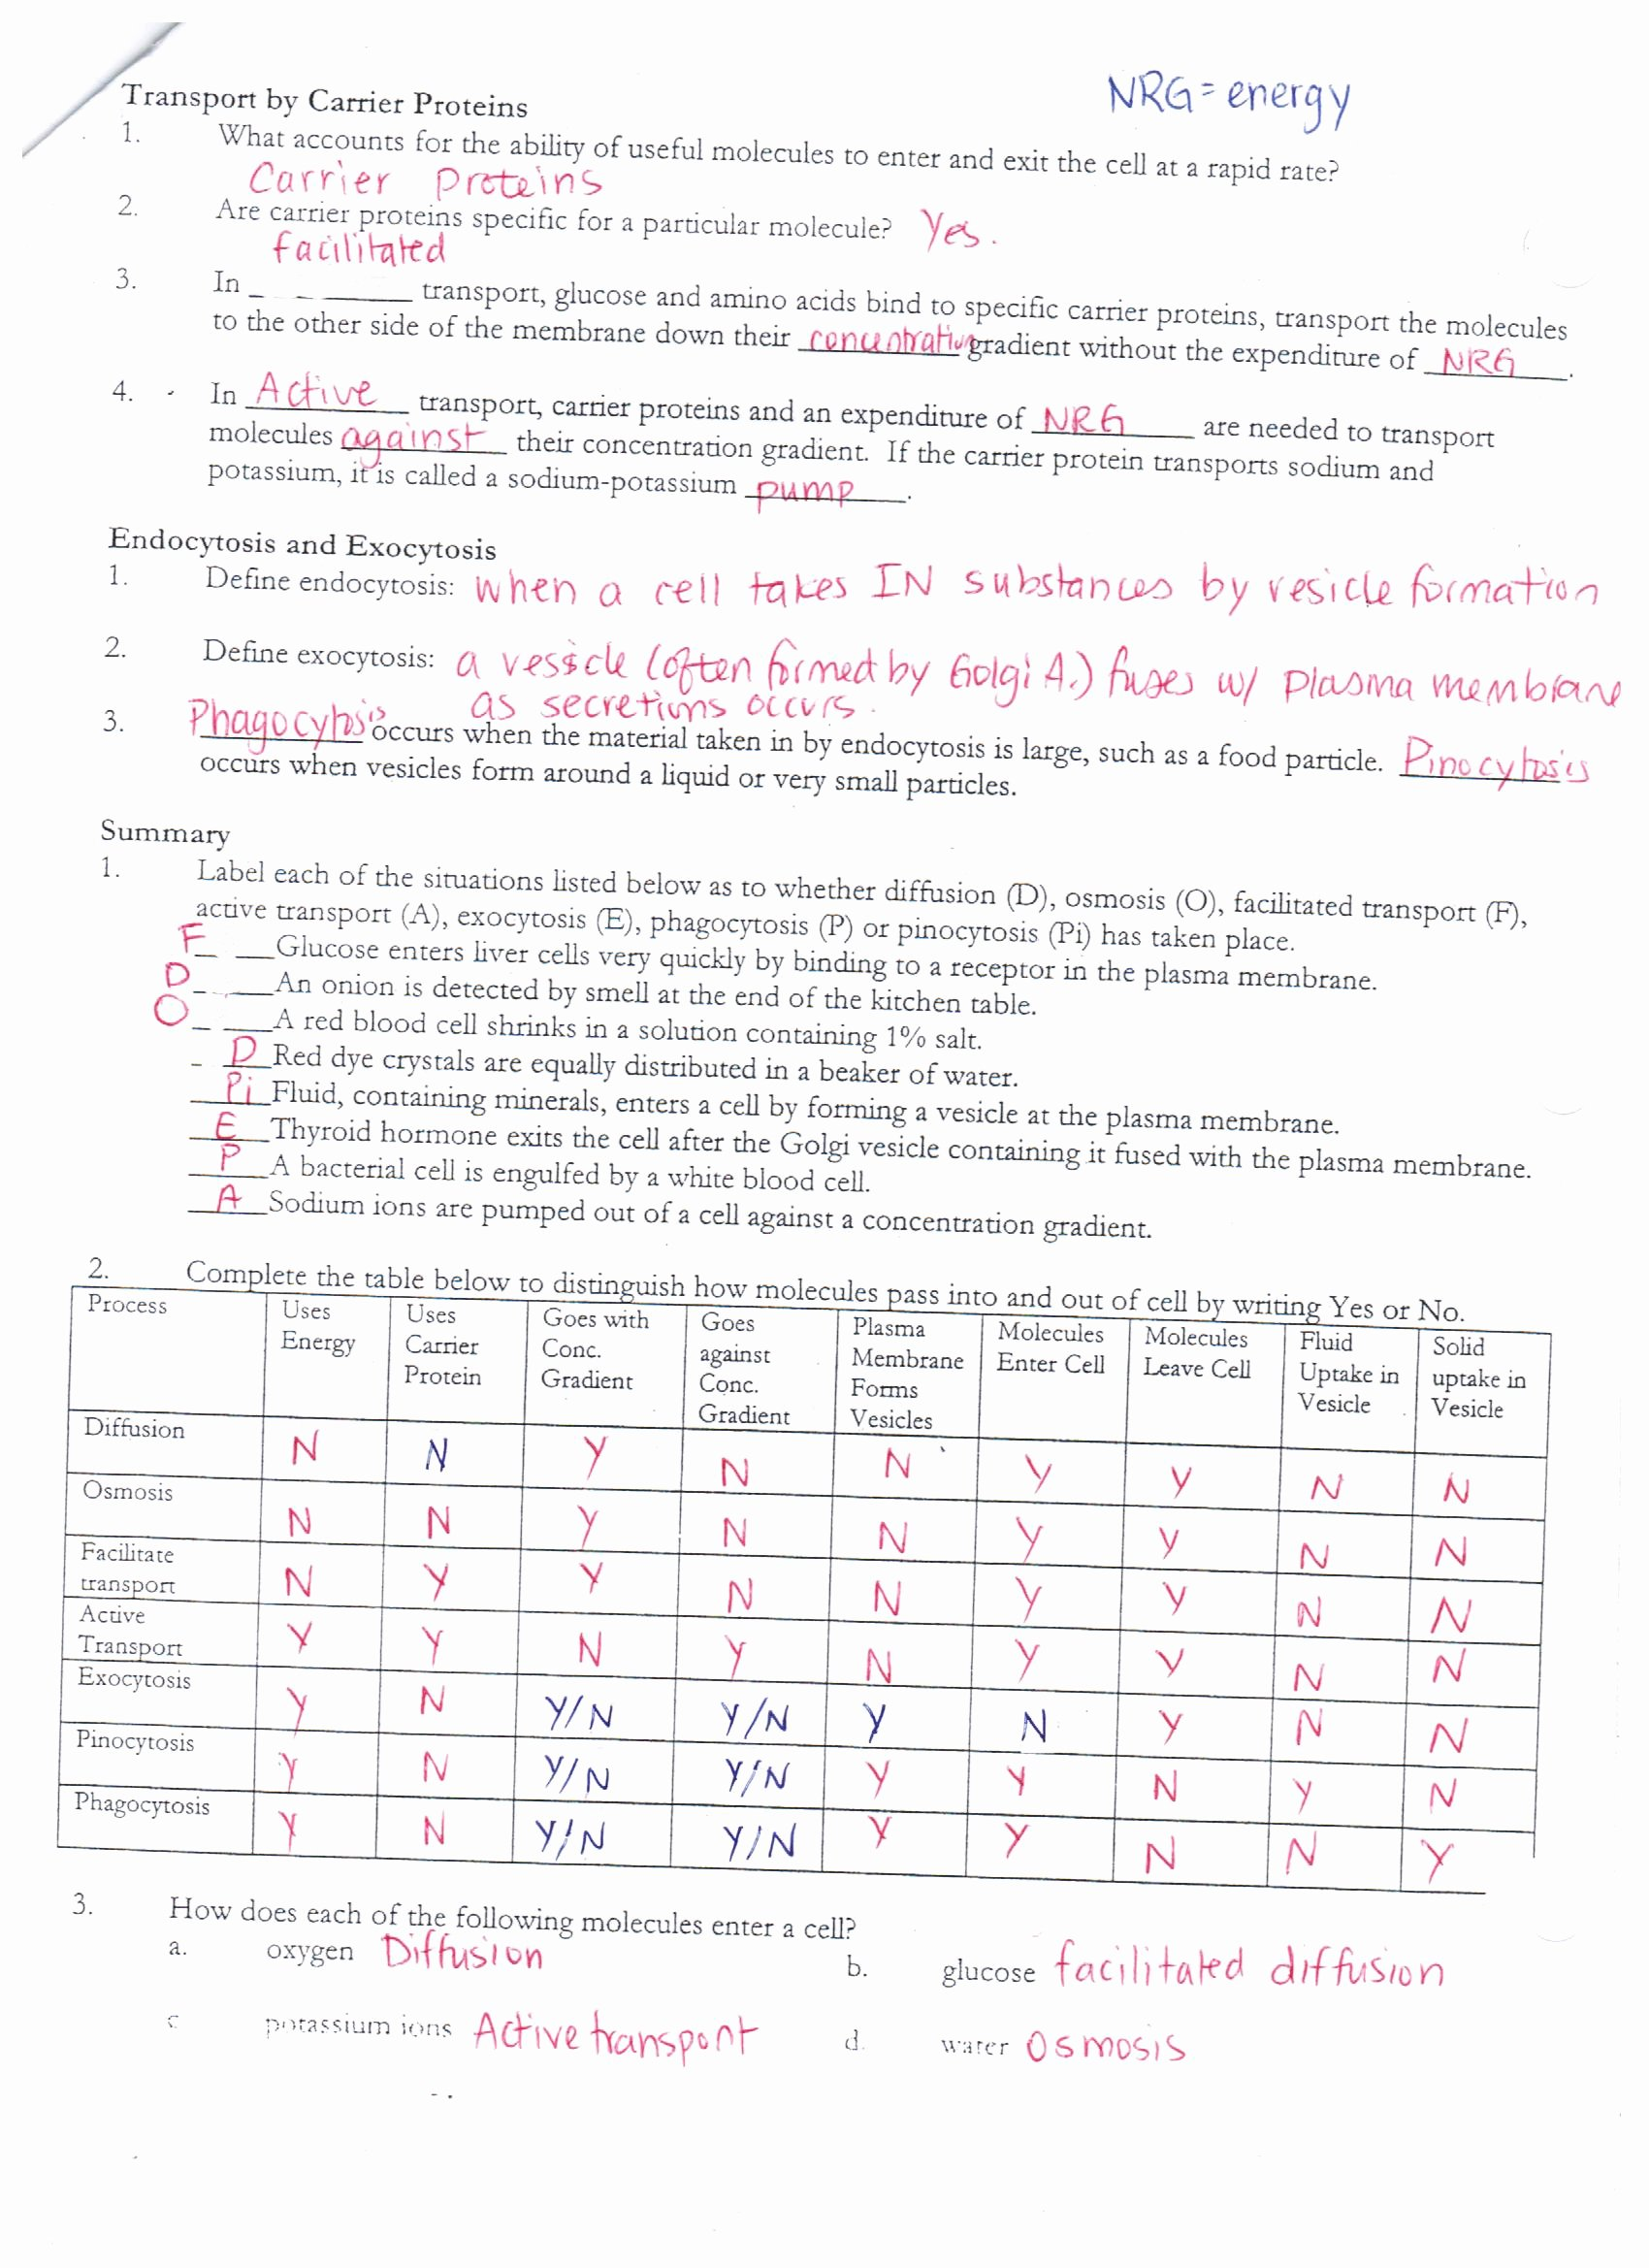 Cell Membrane Images Worksheet Answers Unique Answer Keys Cell Membrane Worksheets